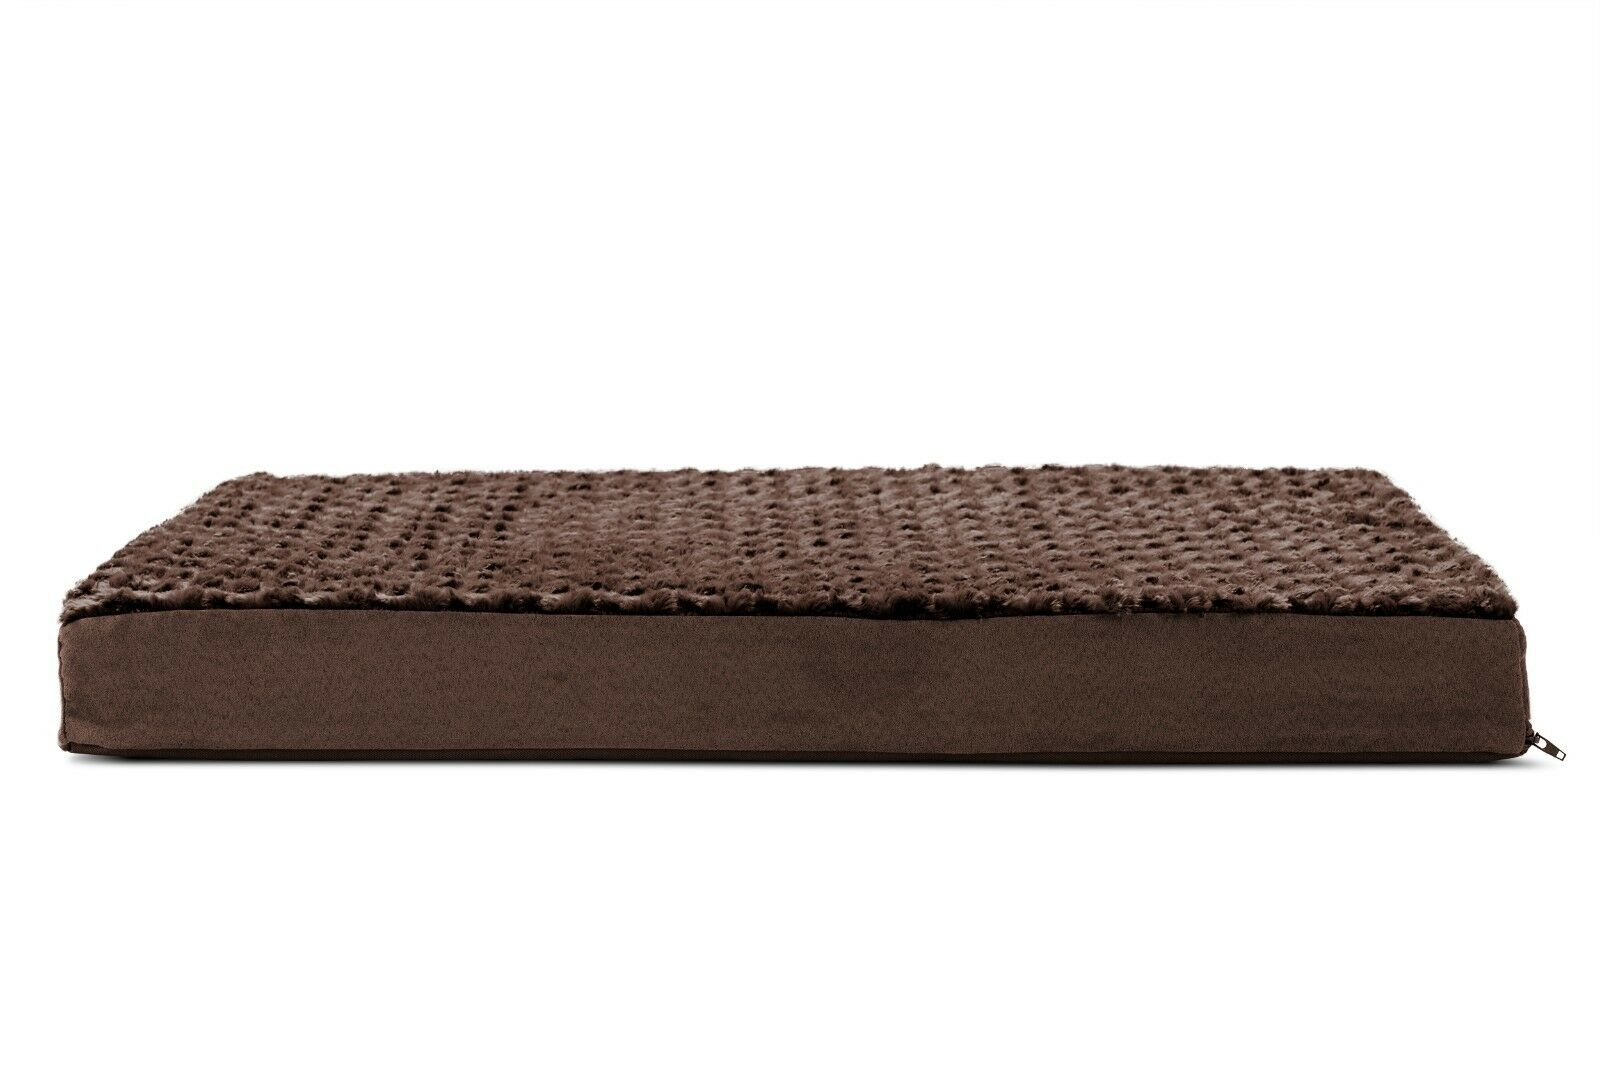 FurHaven Pet Bed Deluxe Ultra Plush Dog Bed Pet Bed